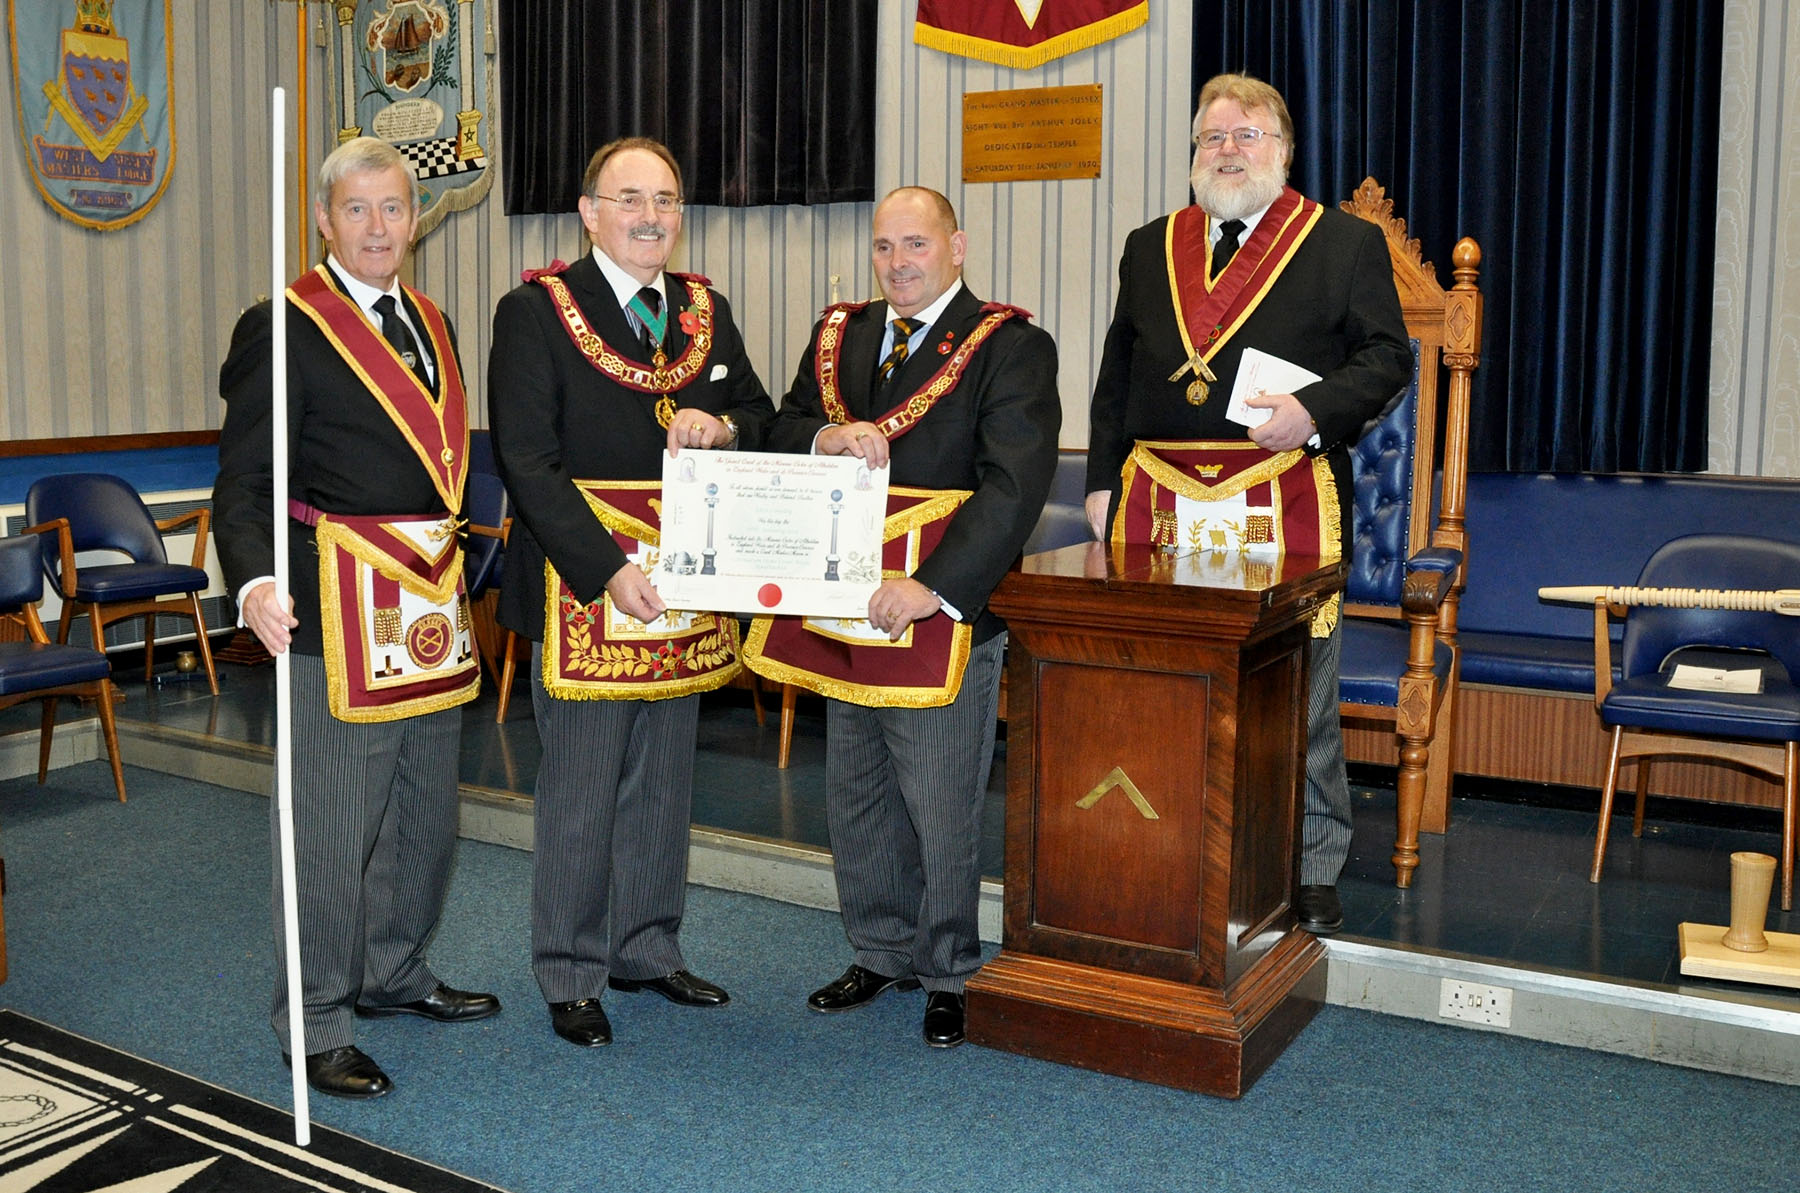 Executive Visit by the Provincial Grand Master to the Court of Prince Edmund